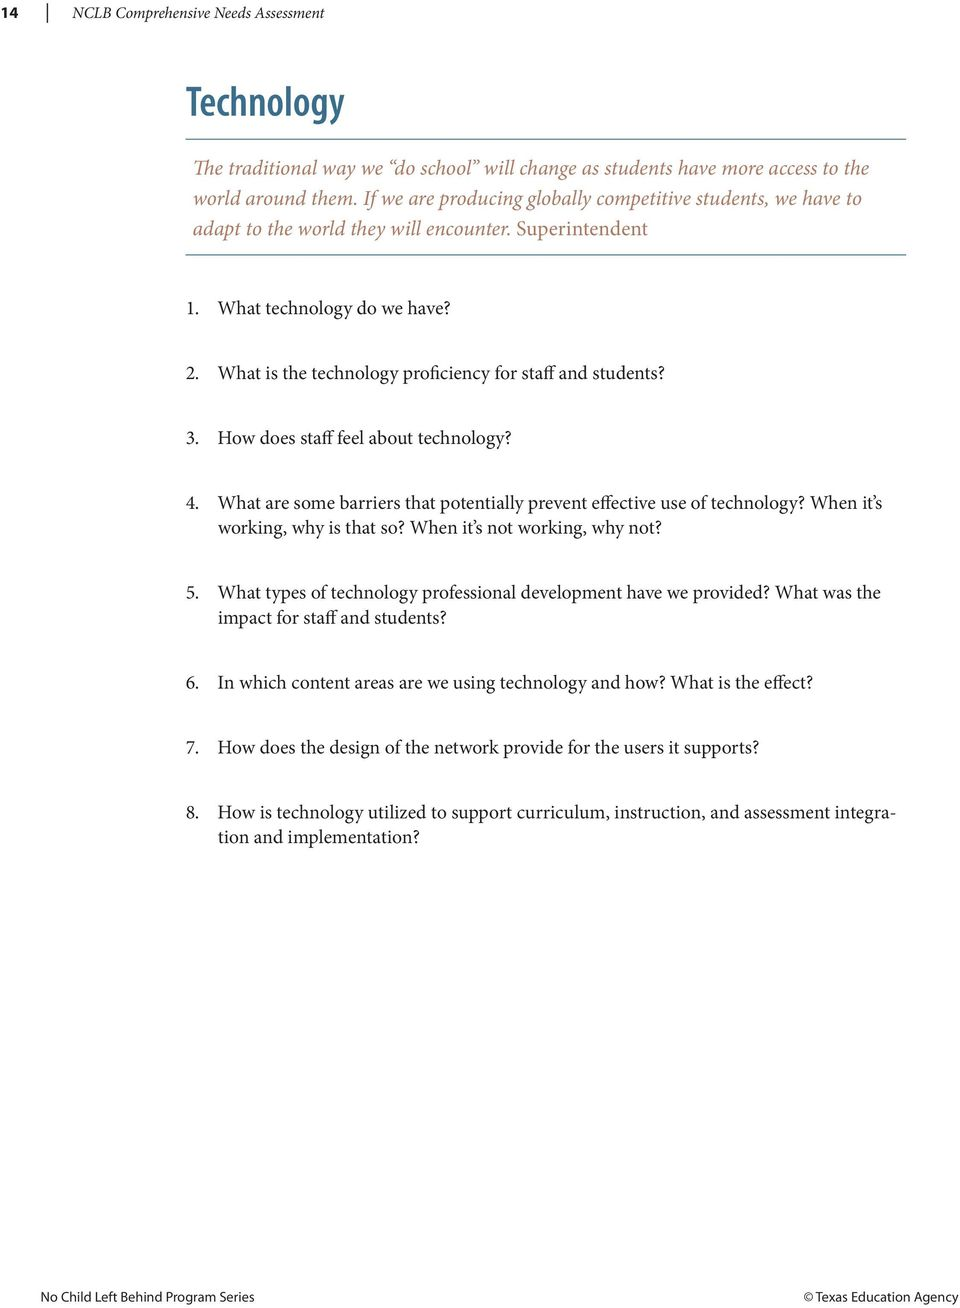 What is the technology proficiency for staff and students? 3. How does staff feel about technology? 4. What are some barriers that potentially prevent effective use of technology?